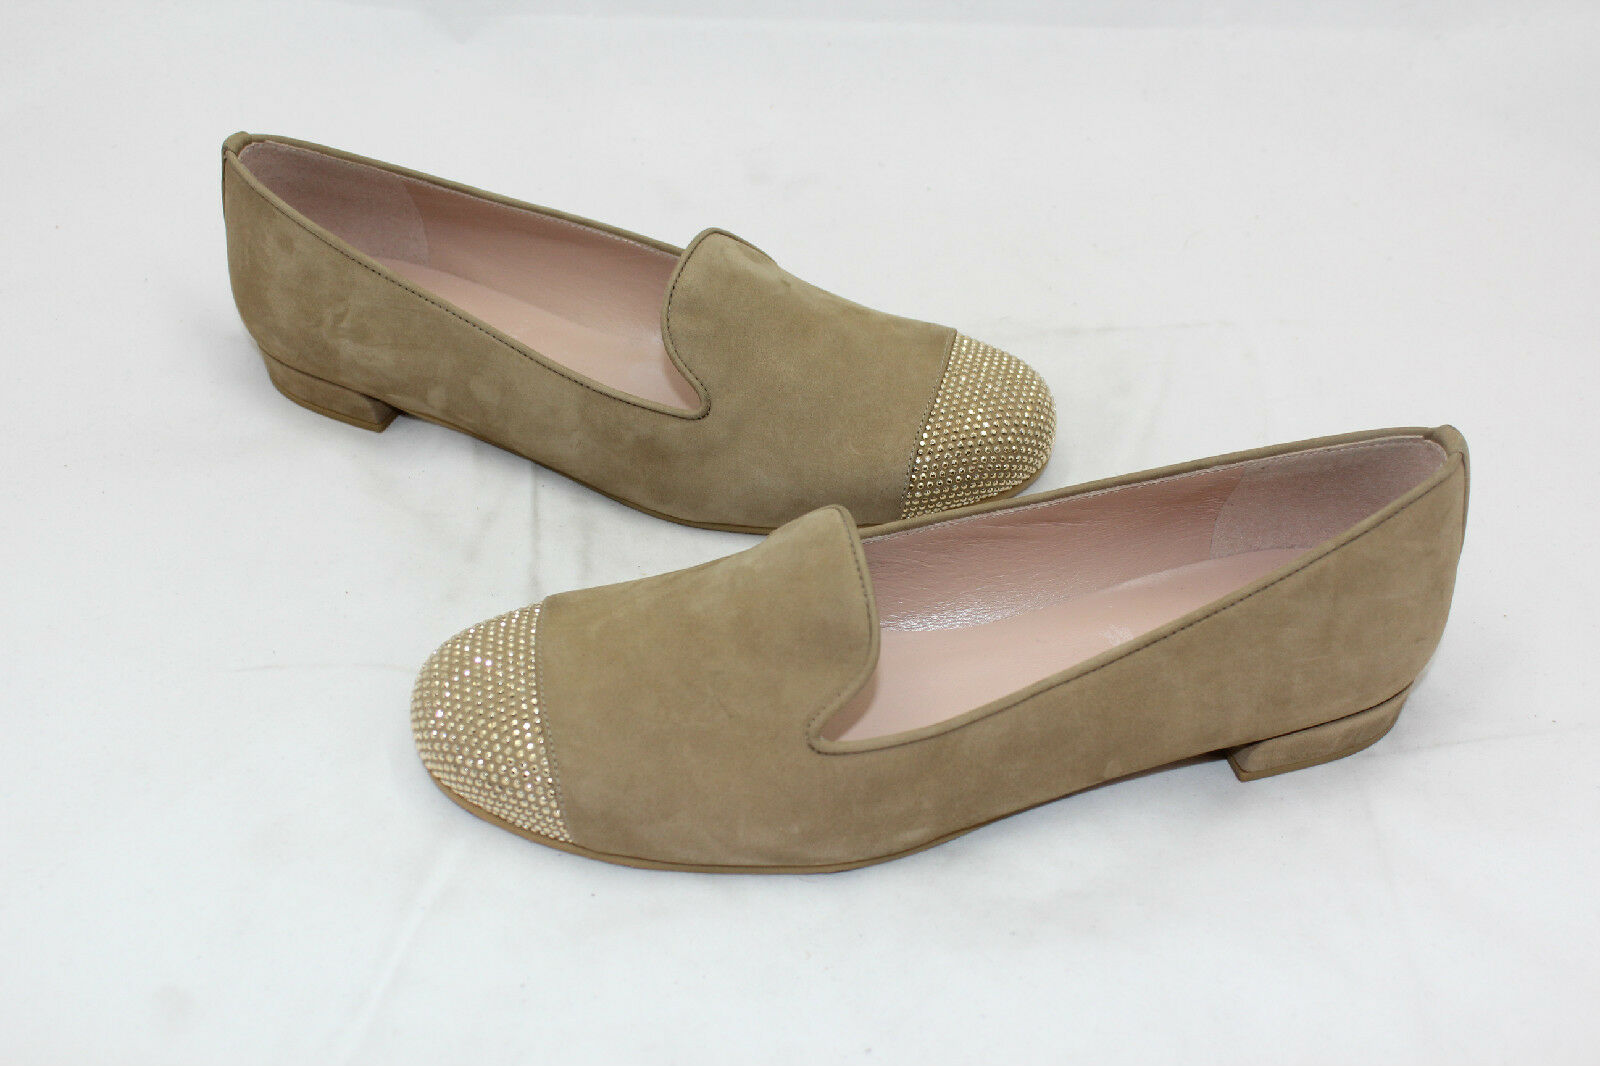 Stuart Tan Weitzman Suede Lingo Loafer Oxford Flats Beige Tan Stuart Metallic Gold Studs 8 6abc69